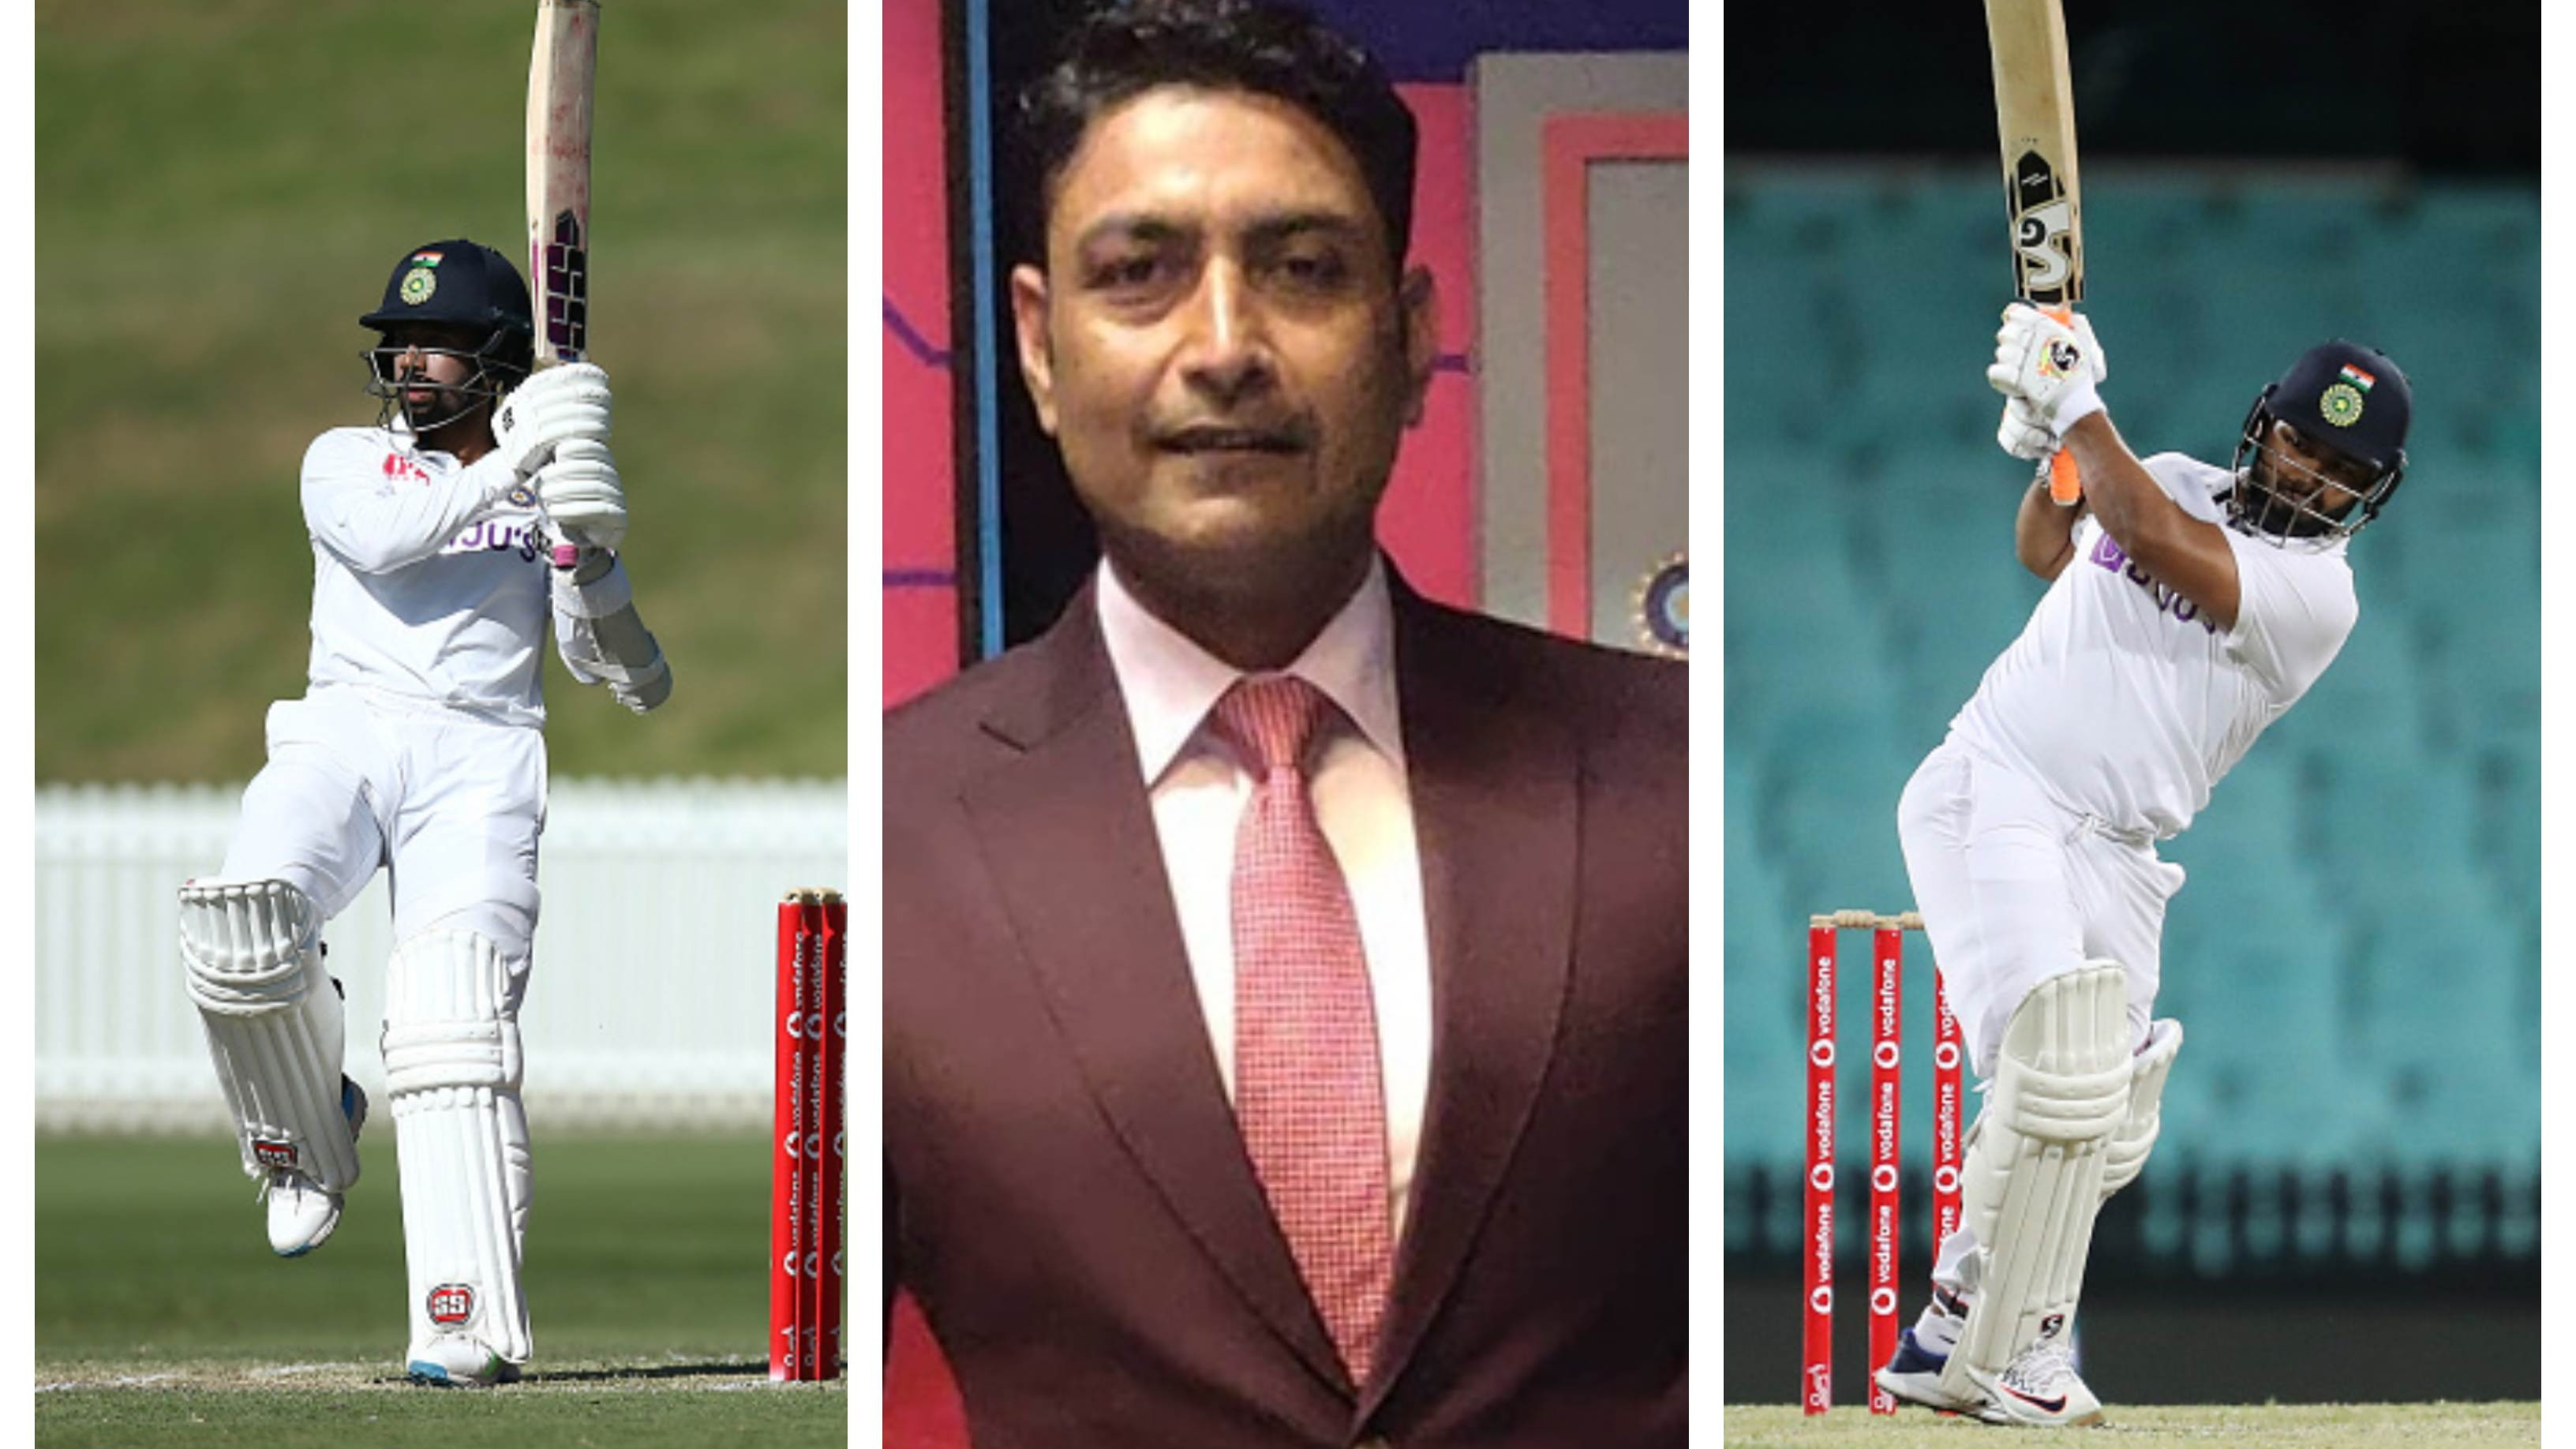 AUS v IND 2020-21: Deep Dasgupta calls for Pant's inclusion after Saha's struggle with the bat in 1st Test